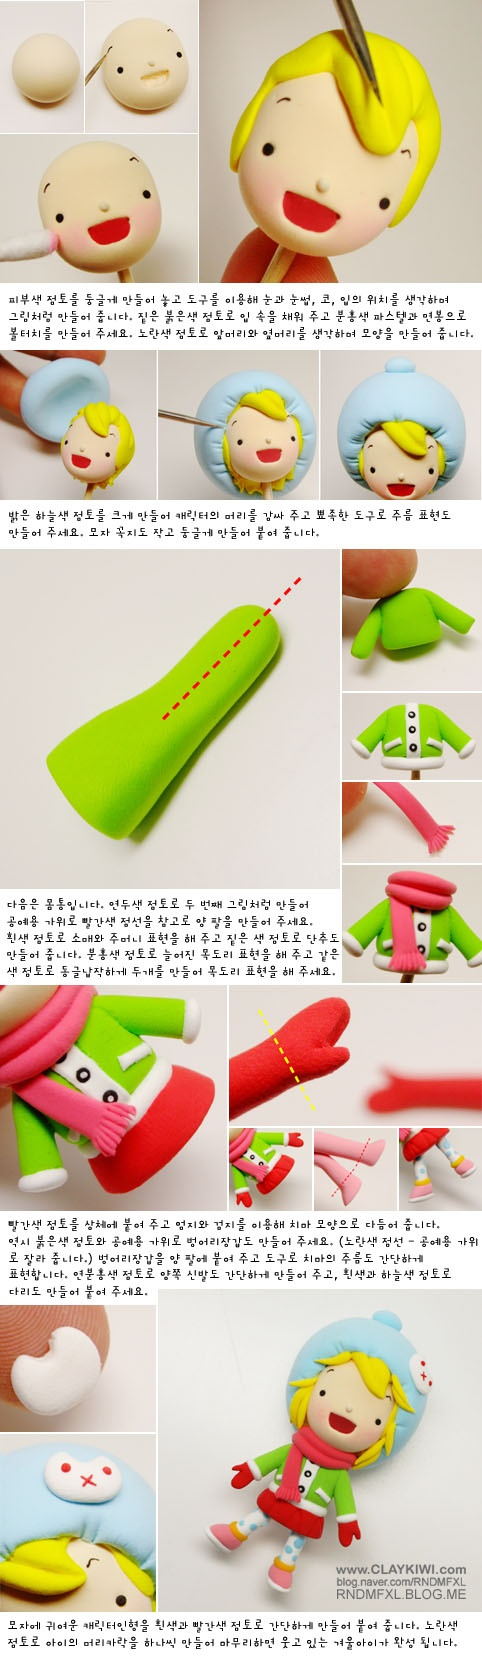 How-to tutorial - Making a cute girl out of polymer clay 겨울 소녀 만들기 - 패러디 캐릭터 2 :: 네이버 블로그